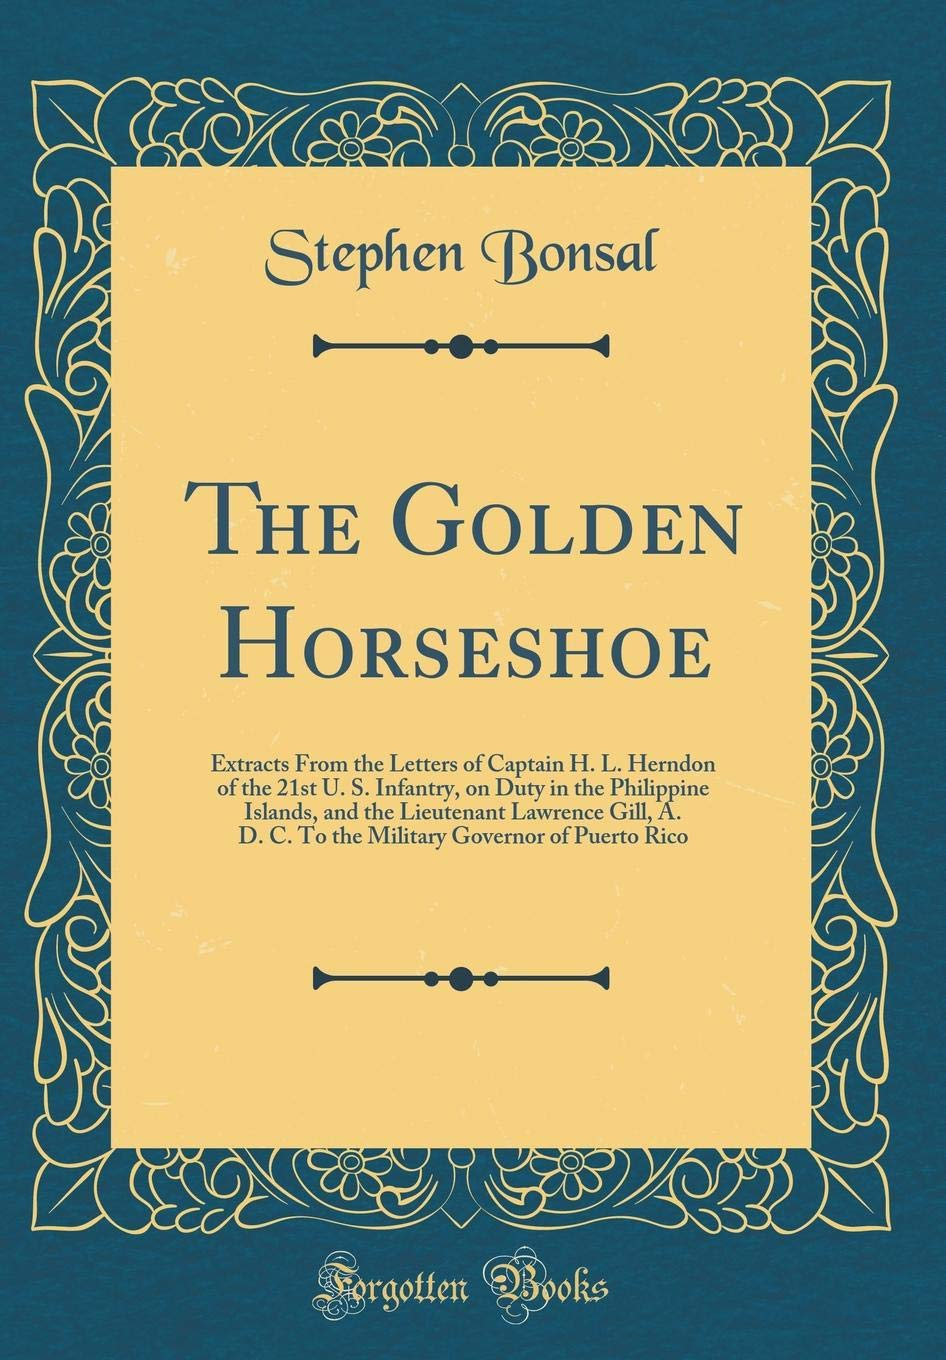 The Golden Horseshoe: Extracts From the Letters of Captain H. L. Herndon of the 21st U. S. Infantry, on Duty in the Philippine Islands, and the ... Governor of Puerto Rico (Classic Reprint) pdf